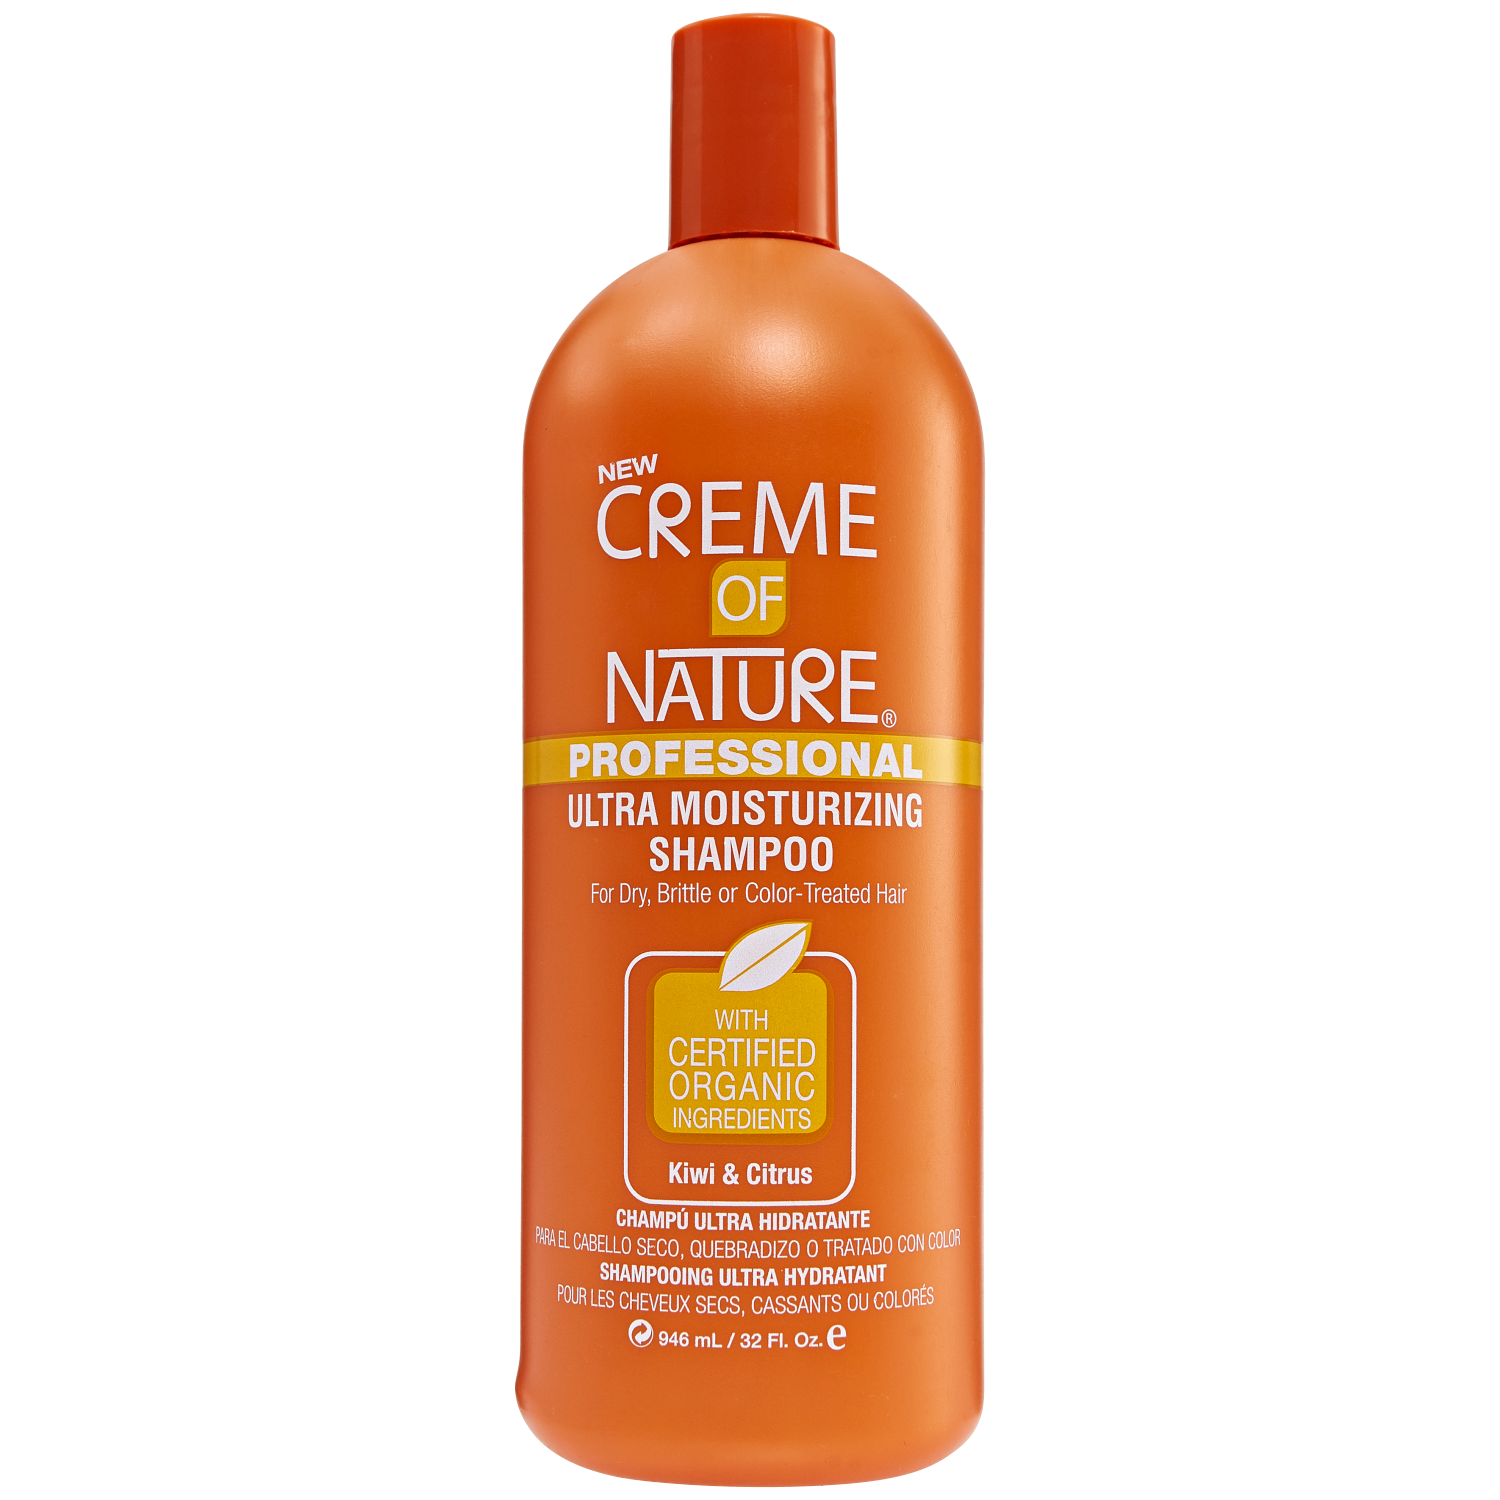 Professional Ultra Moisturizing Shampoo By Creme Of Nature